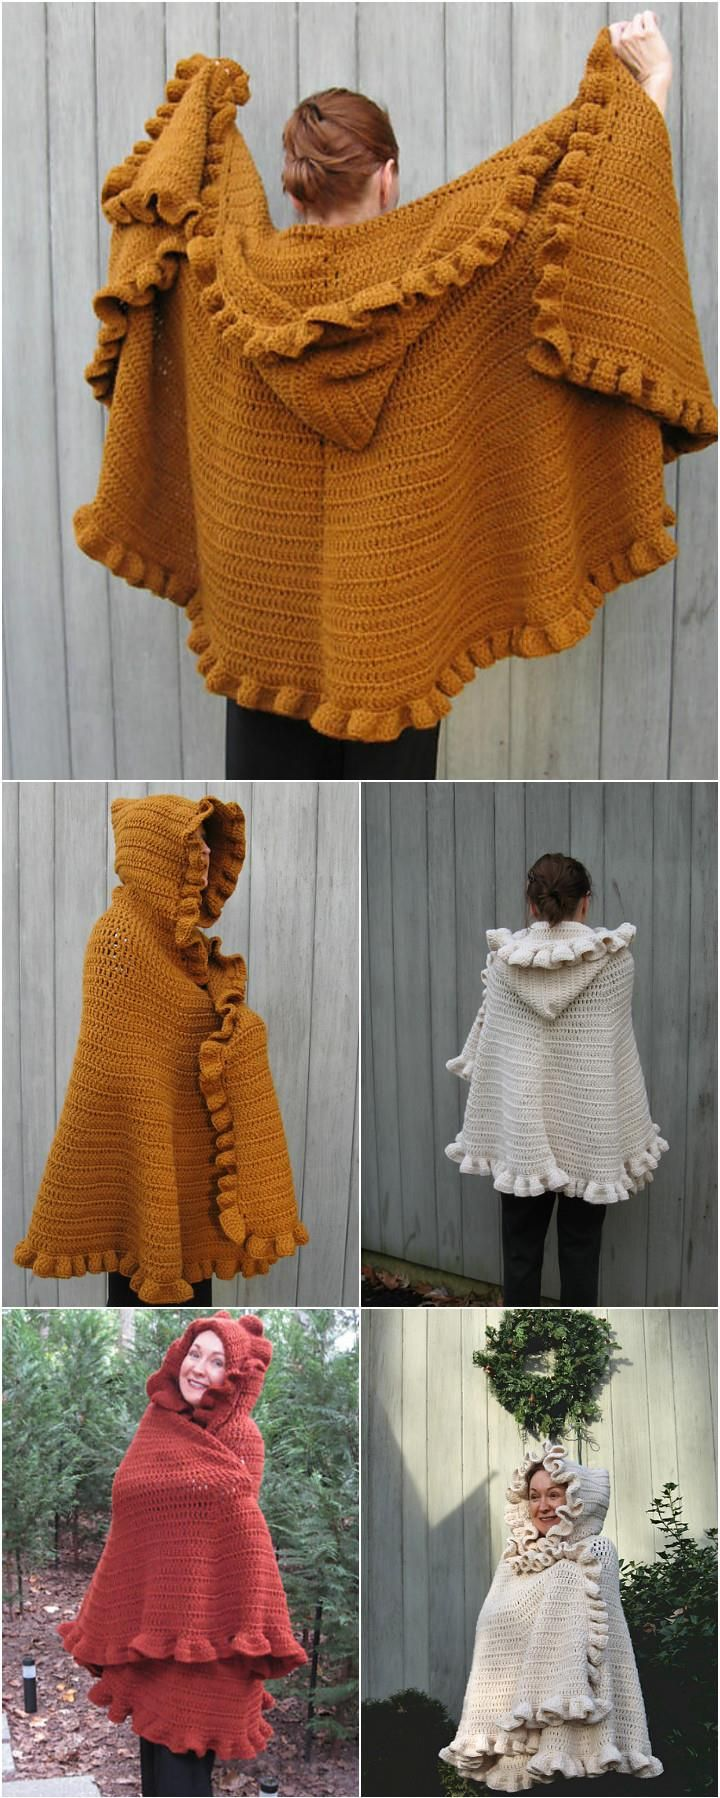 Crochet Ruffled Shawl - 10 FREE Crochet Shawl Patterns for Women's | 101 Crochet